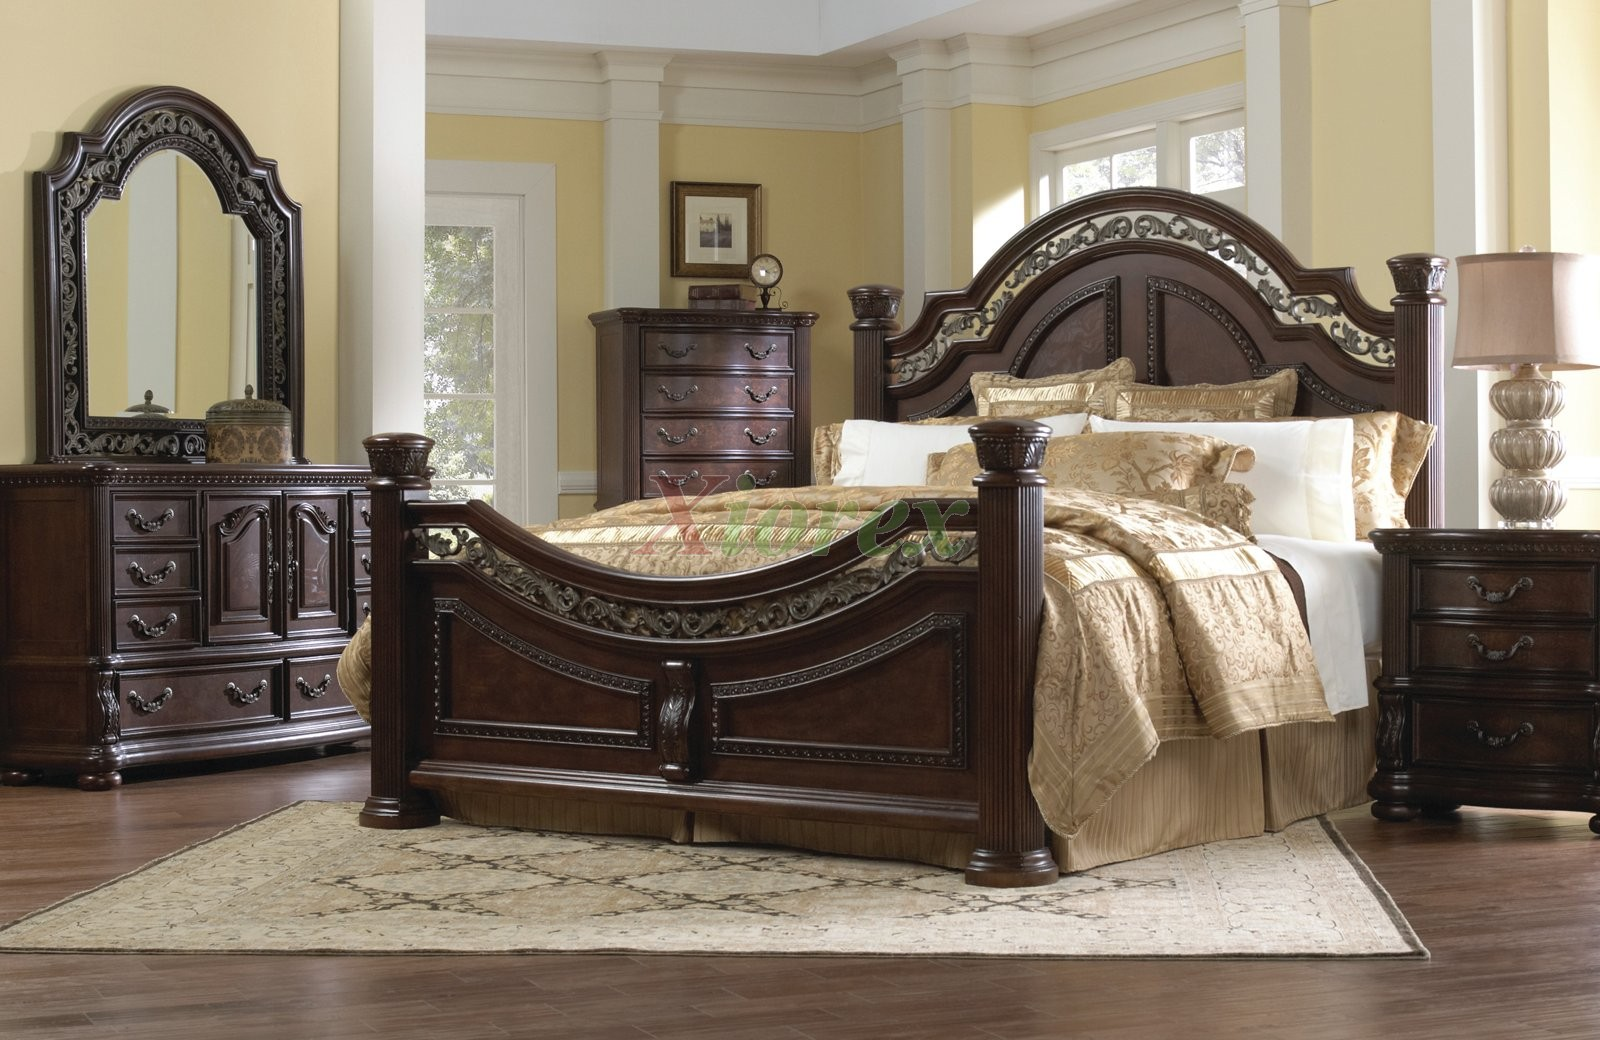 New traditional bedroom furniture set w arched headboard beds 107   xiorex fmbxbjh